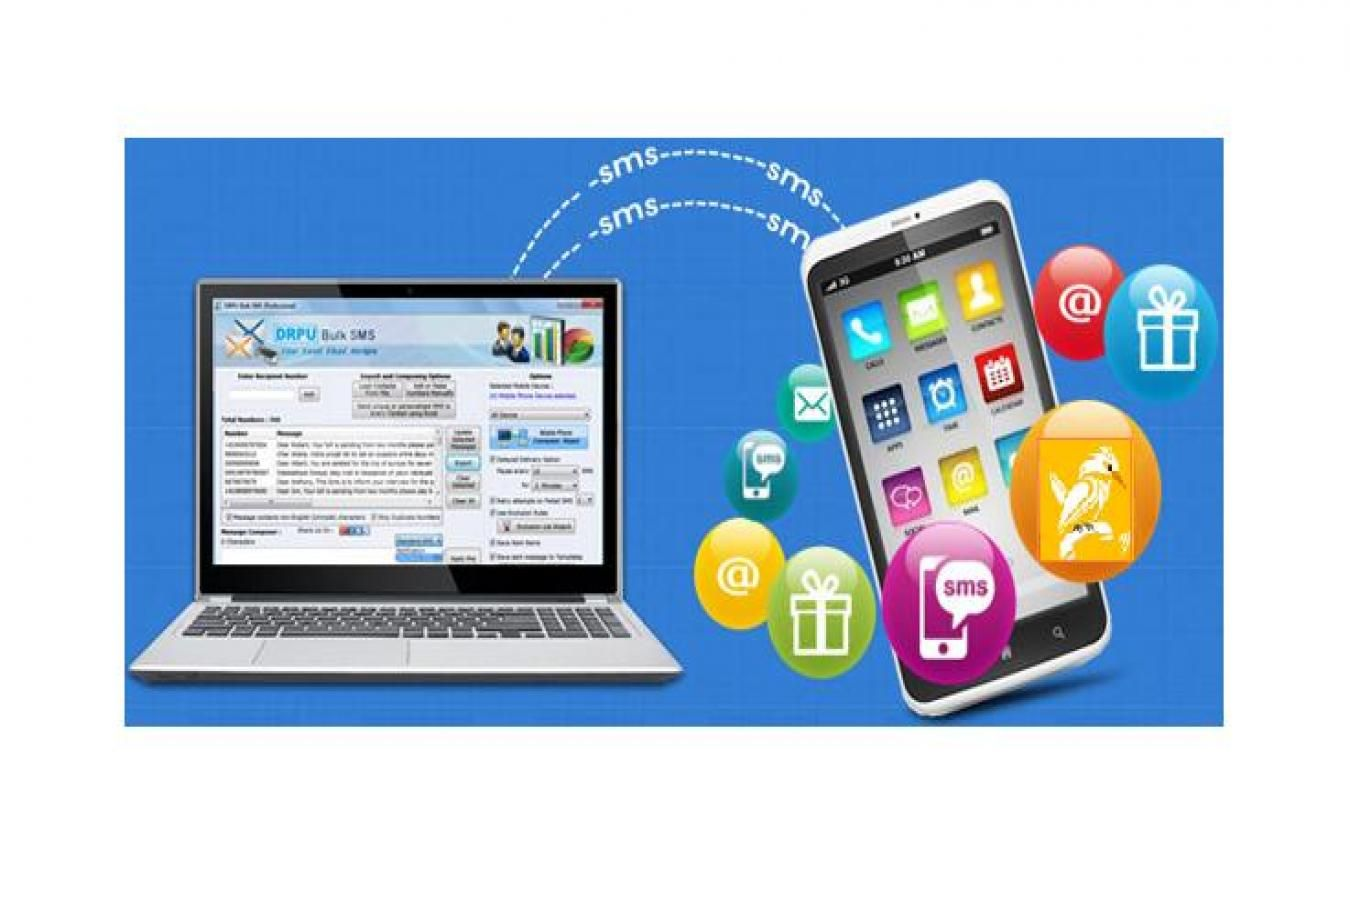 Mobile Messaging Applications in Day to Day Scenario has